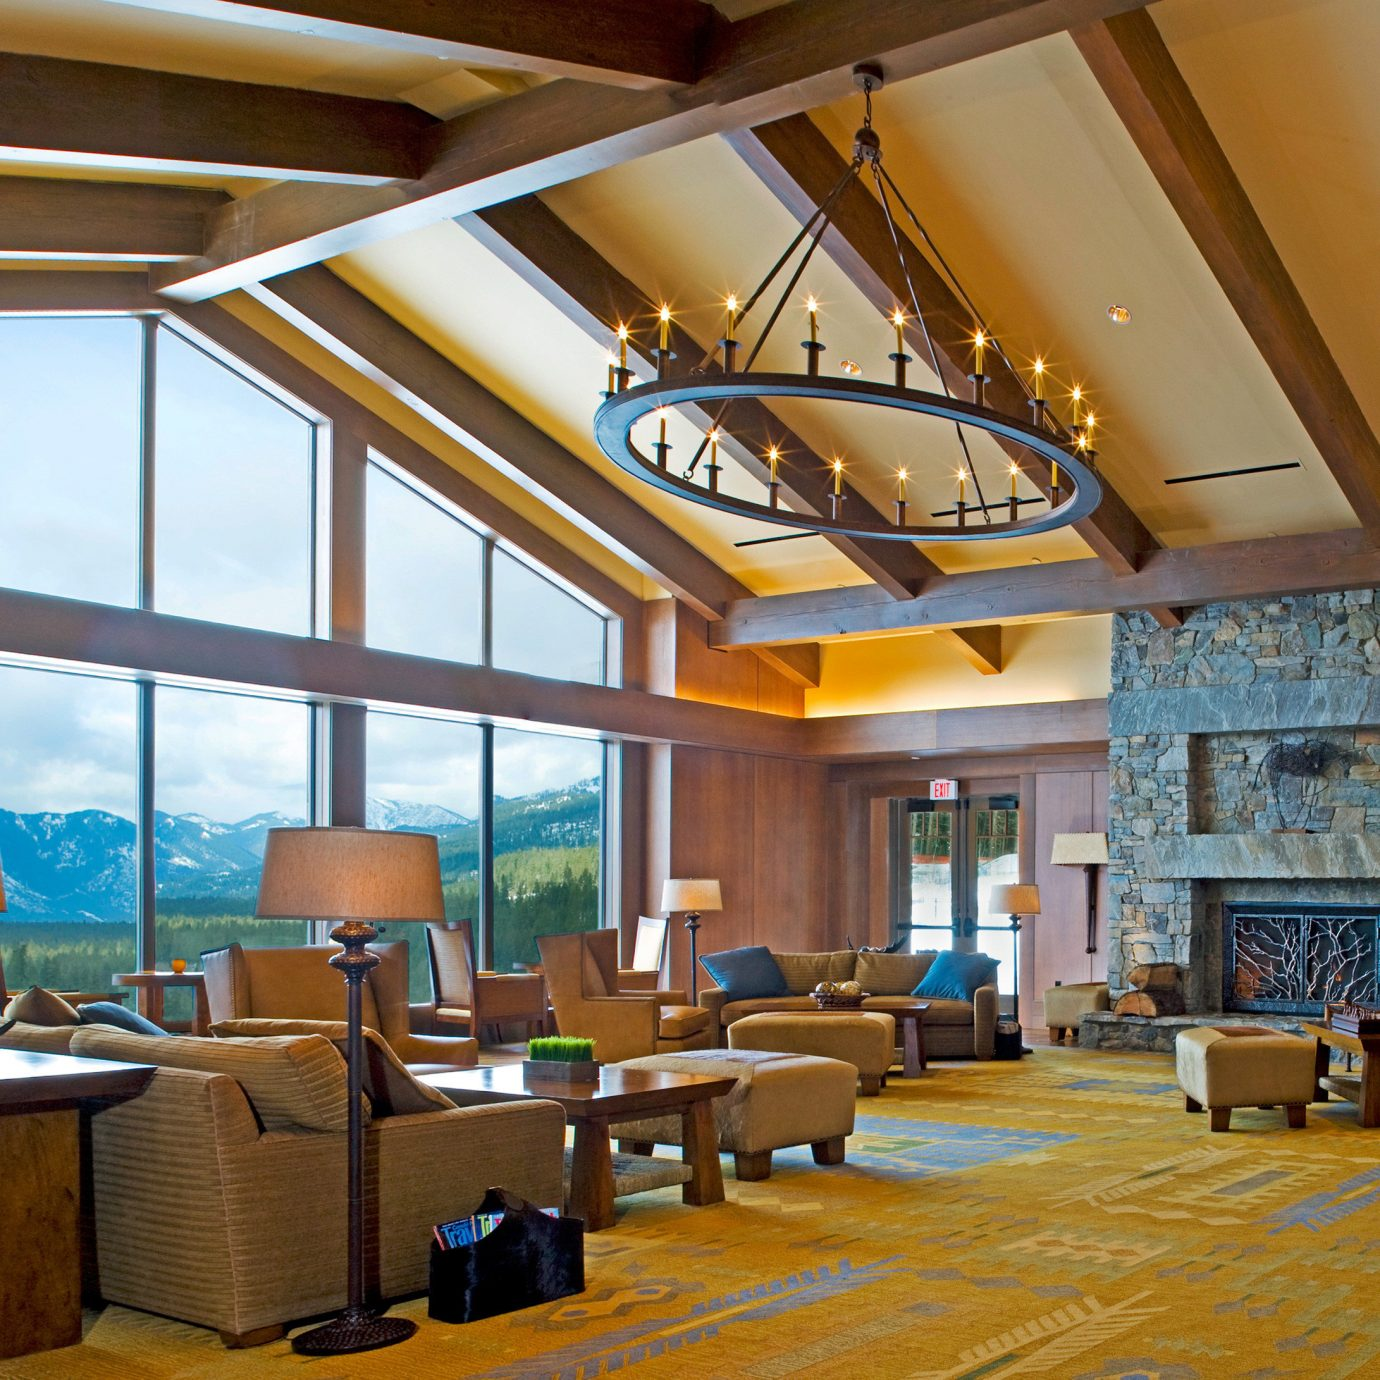 Fireplace Lounge Modern Mountains Natural wonders Resort Rustic Scenic views property Lobby recreation room home living room condominium